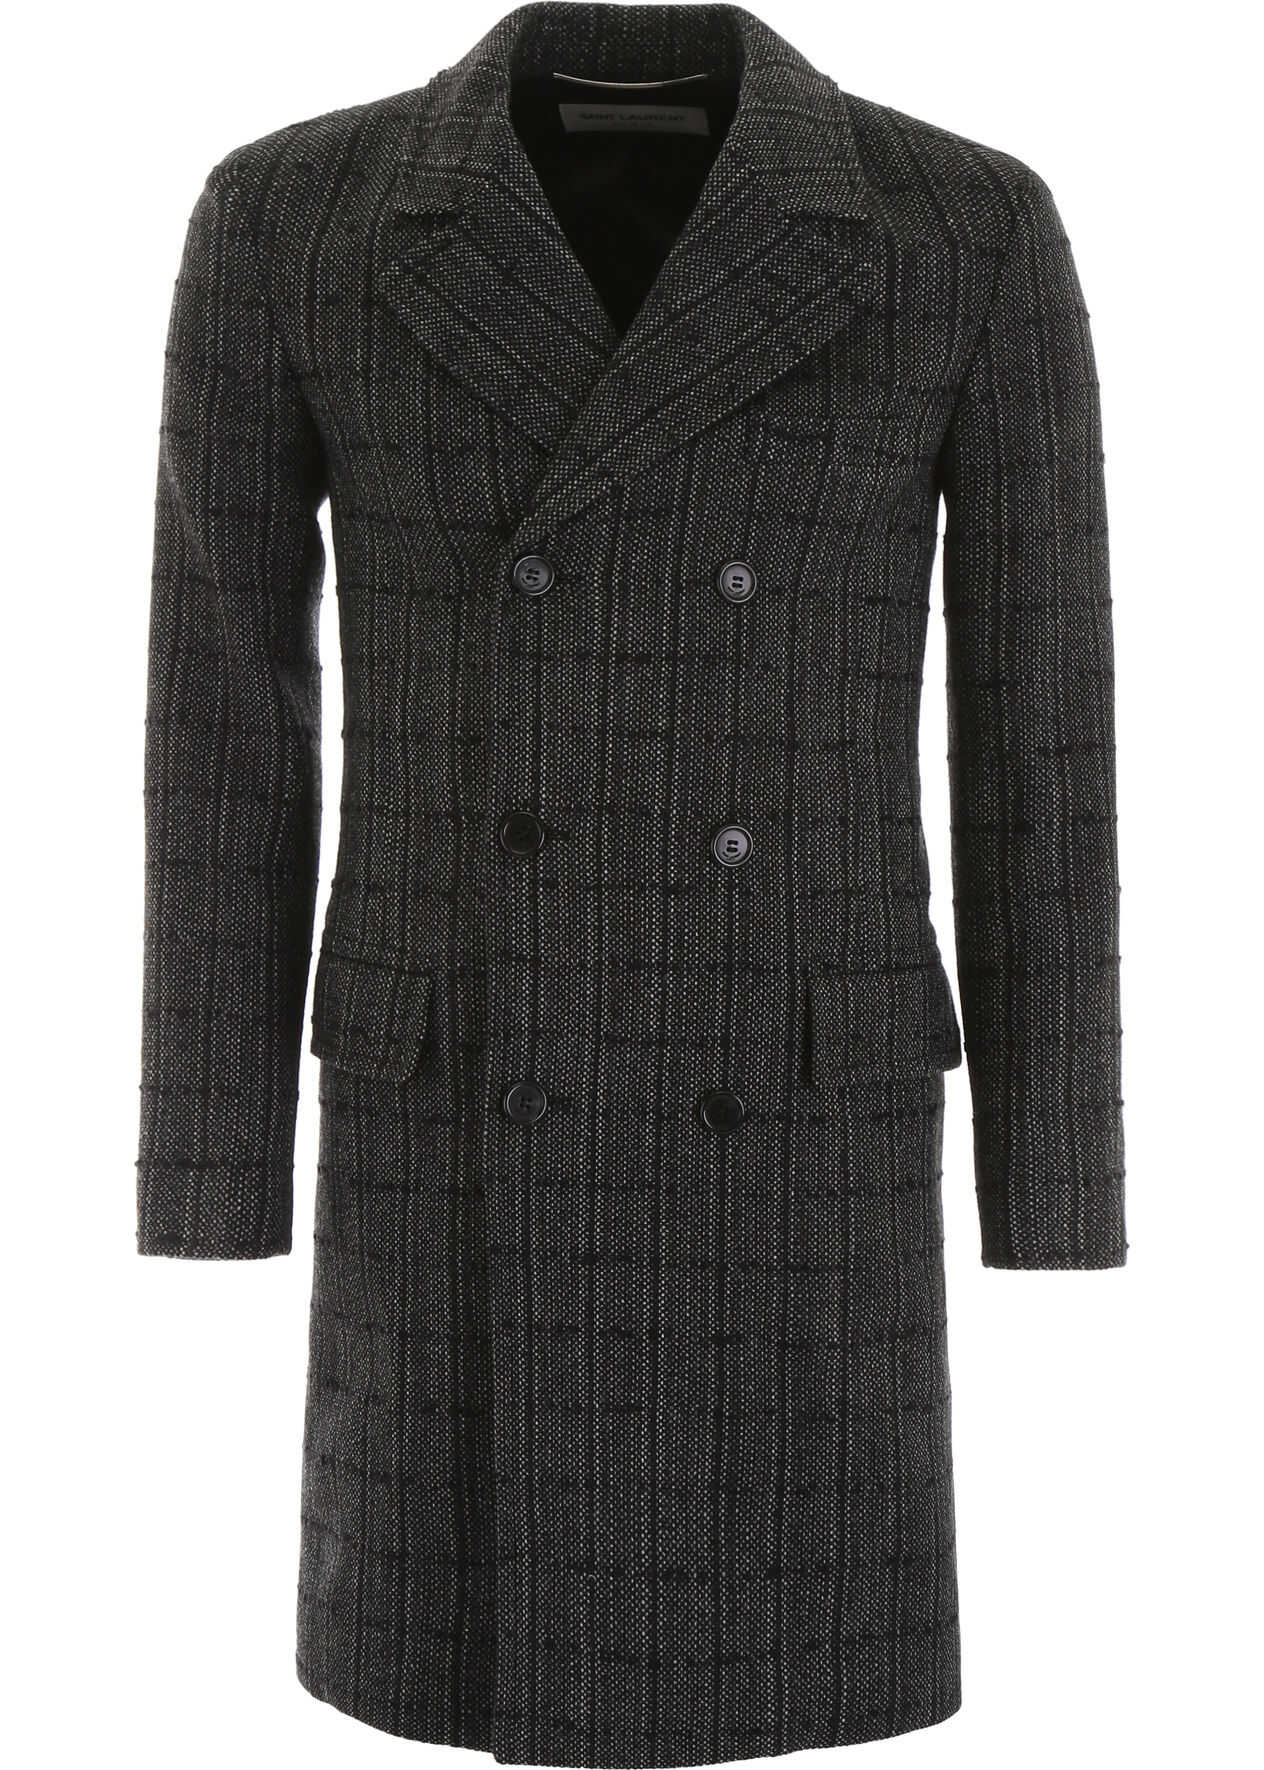 Saint Laurent Check Tweed Coat NOIR CRAIE